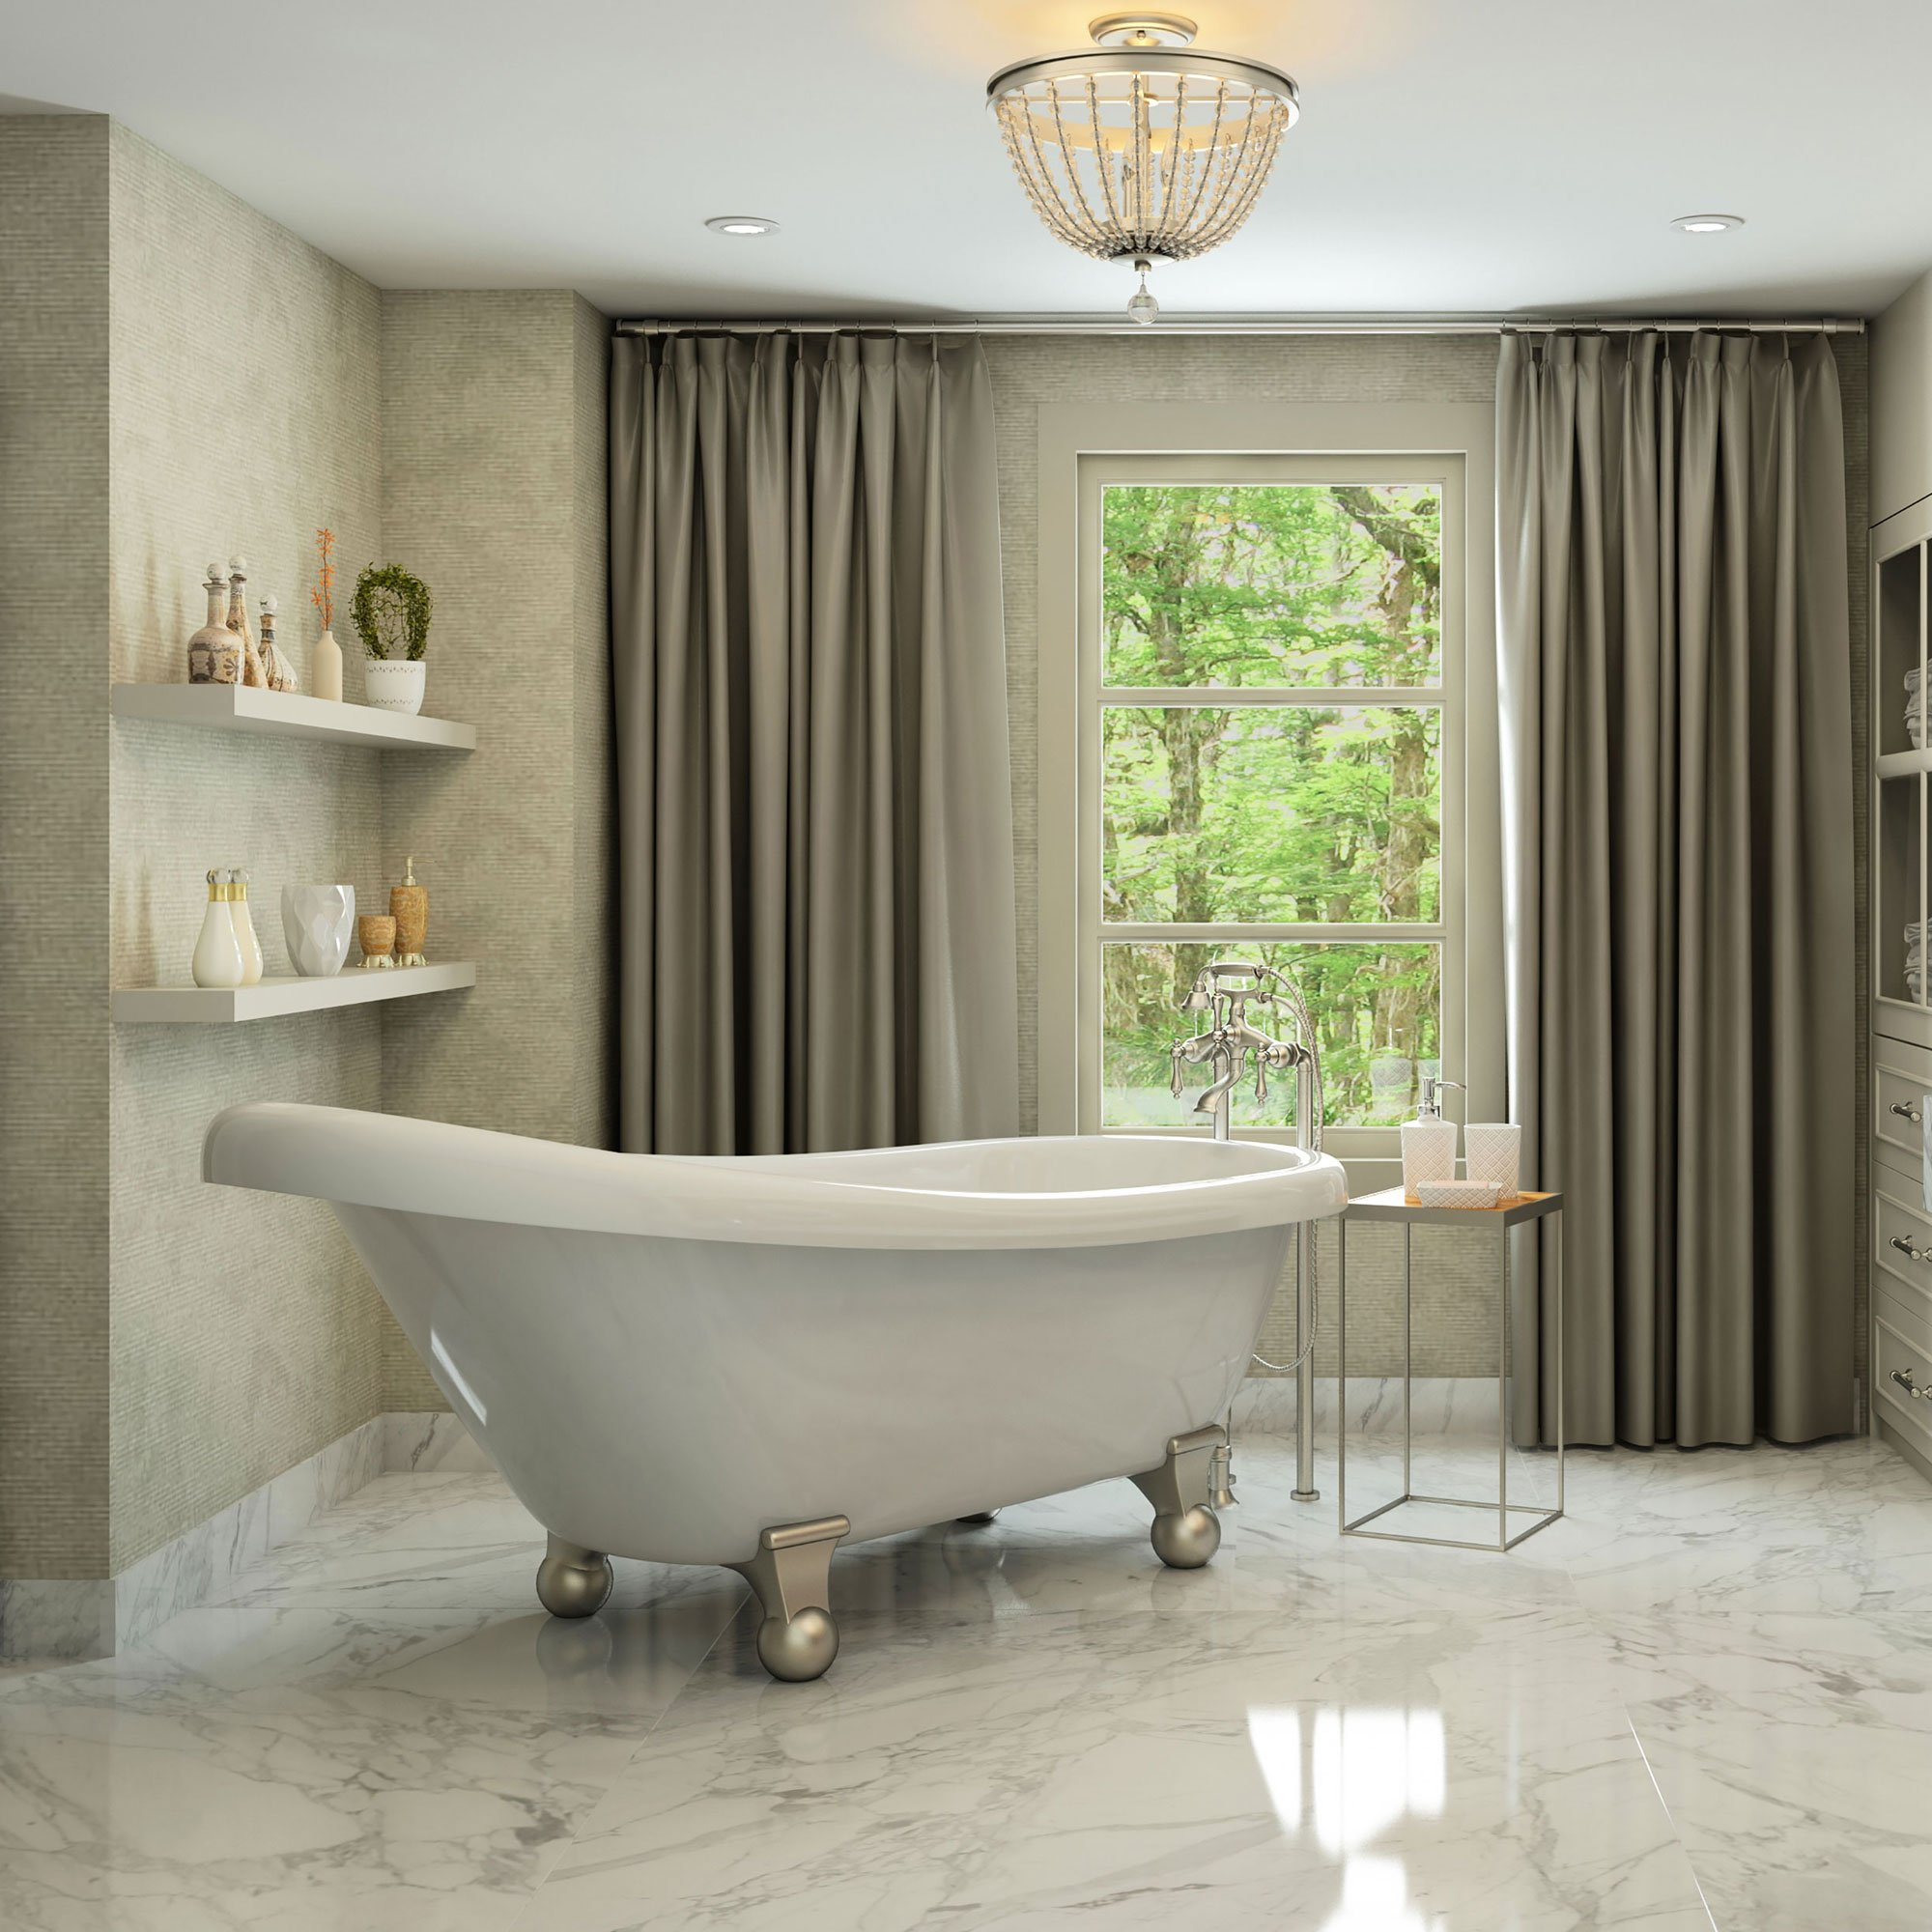 Luxury 60 inch Modern Clawfoot Tub in White with Stand-Alone Freestanding Tub Design, Includes Modern Brushed Nickel Cannonball Feet and Drain, From The Brookdale Collection by Pelham & White (Image #1)